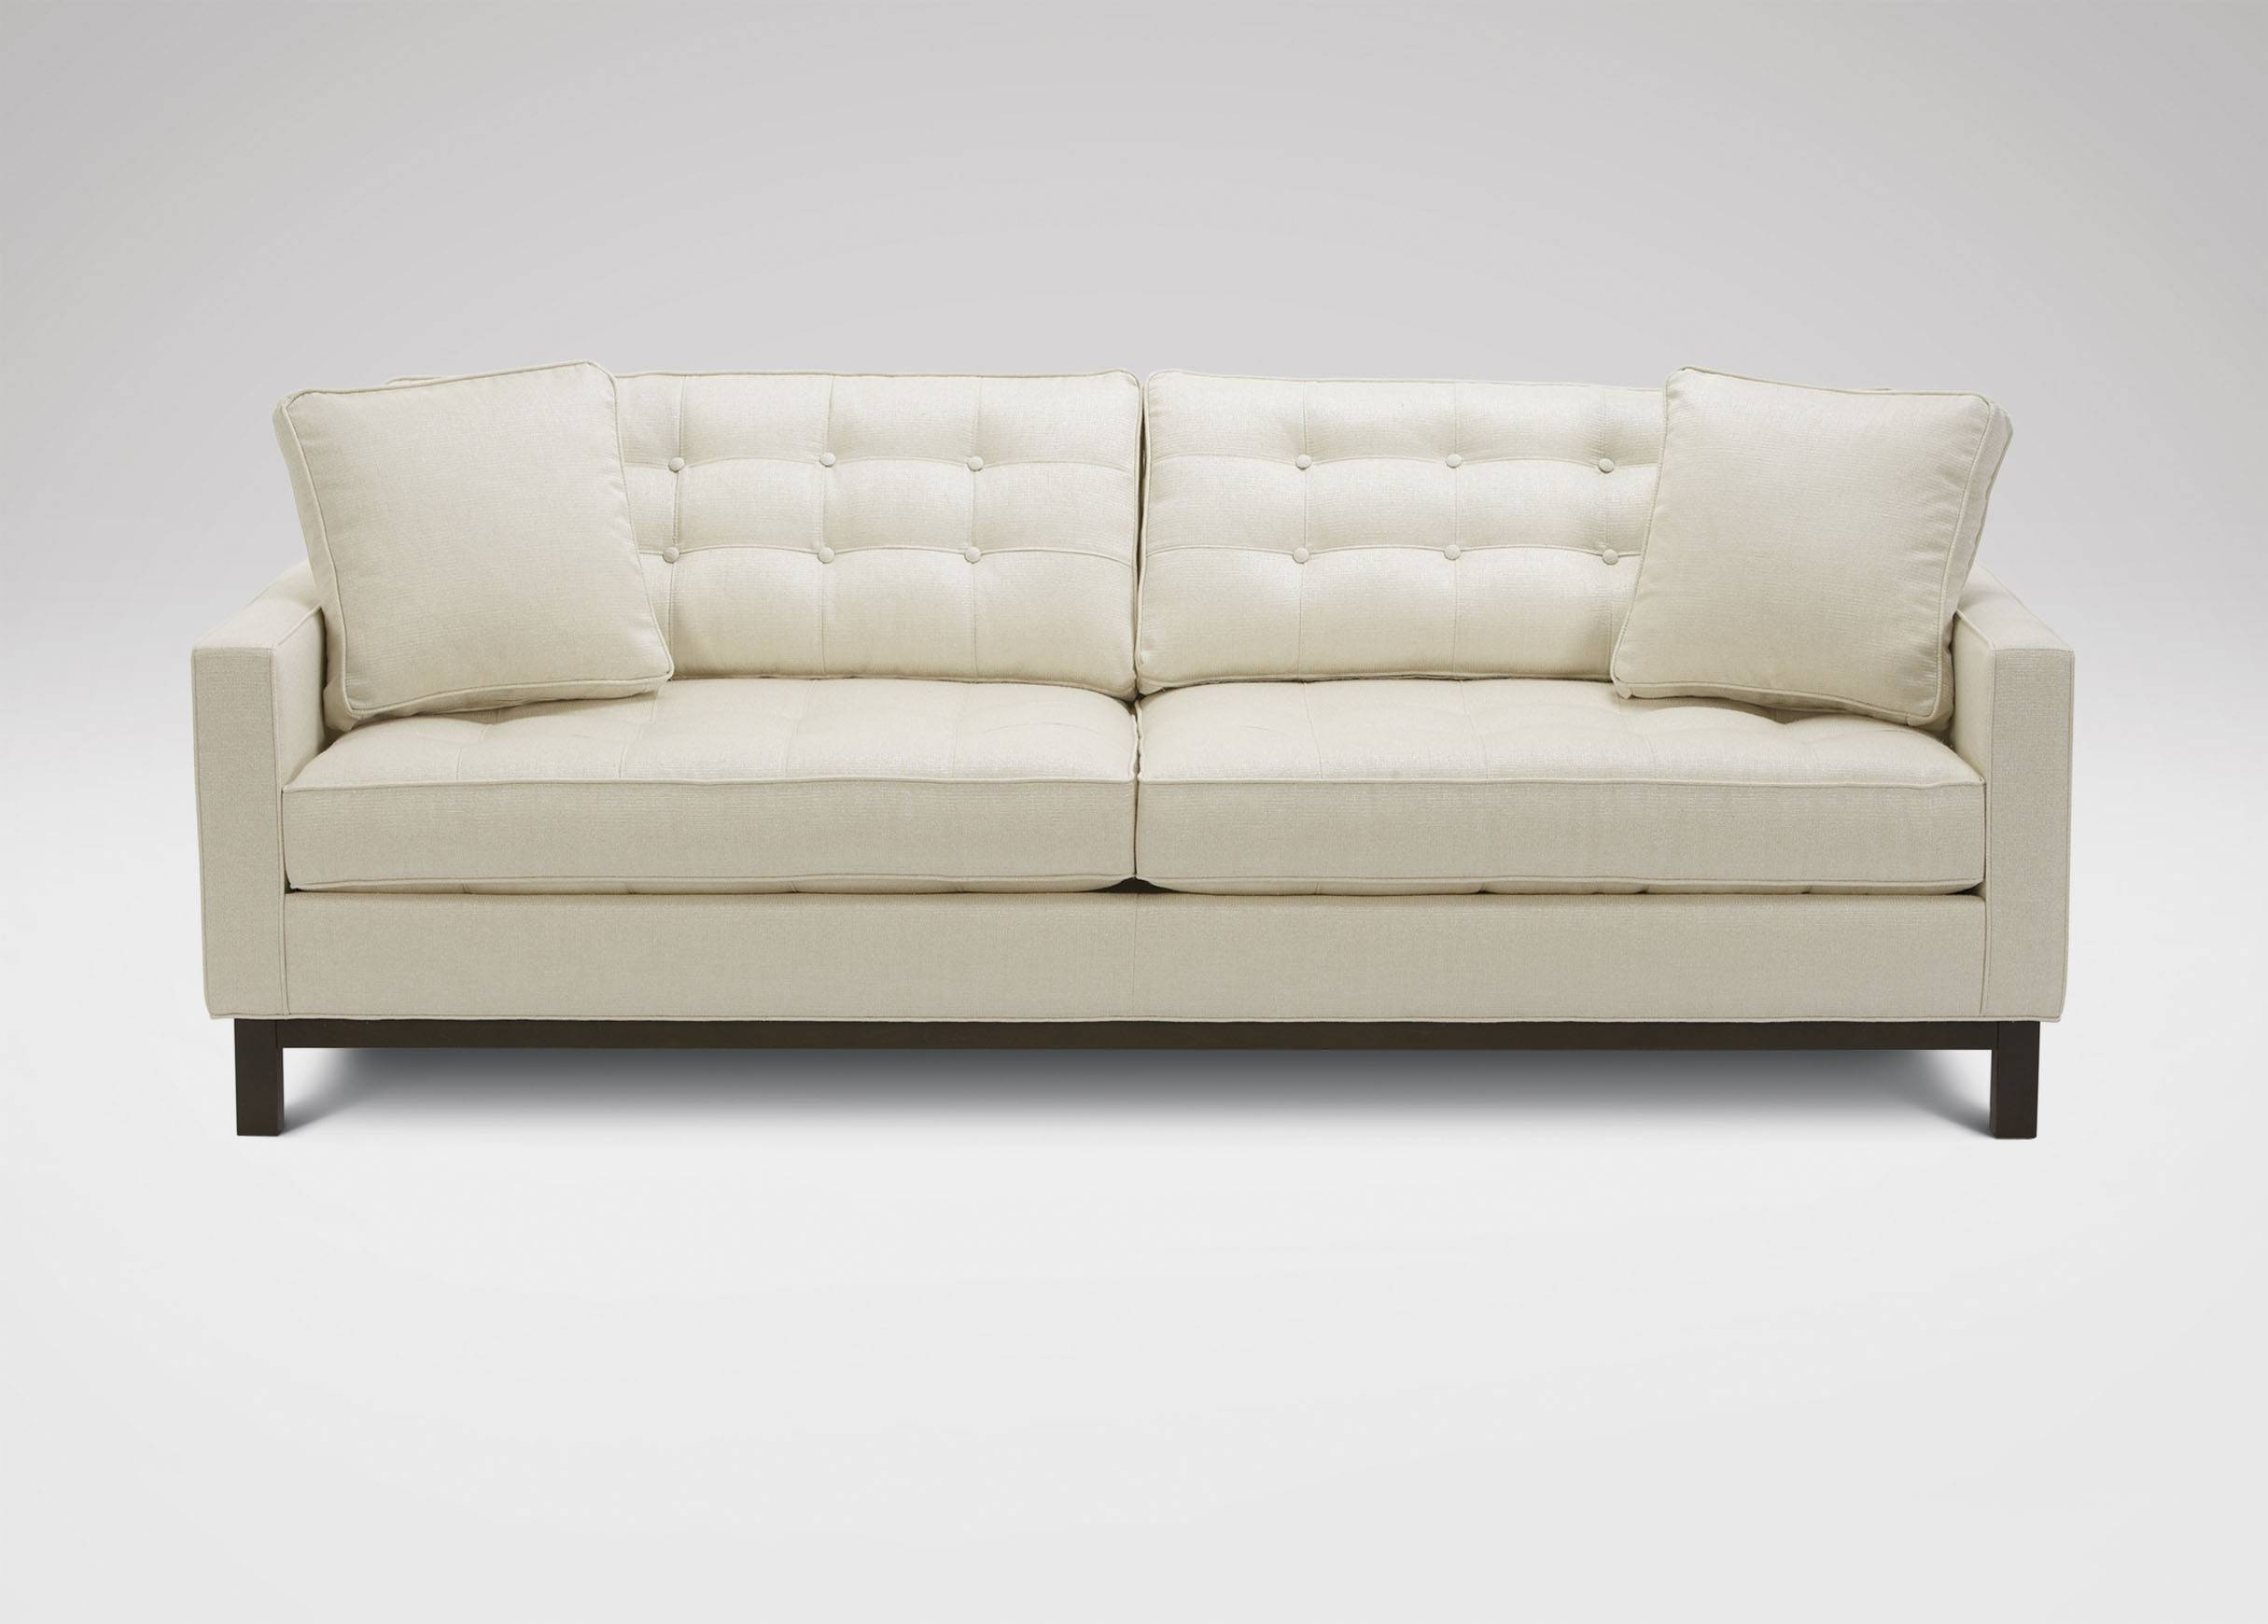 Sofas: Ethan Allen Sofa Bed | Ethan Allen Preston Sofa | Ethan with Ethan Allen Whitney Sofas (Image 11 of 15)